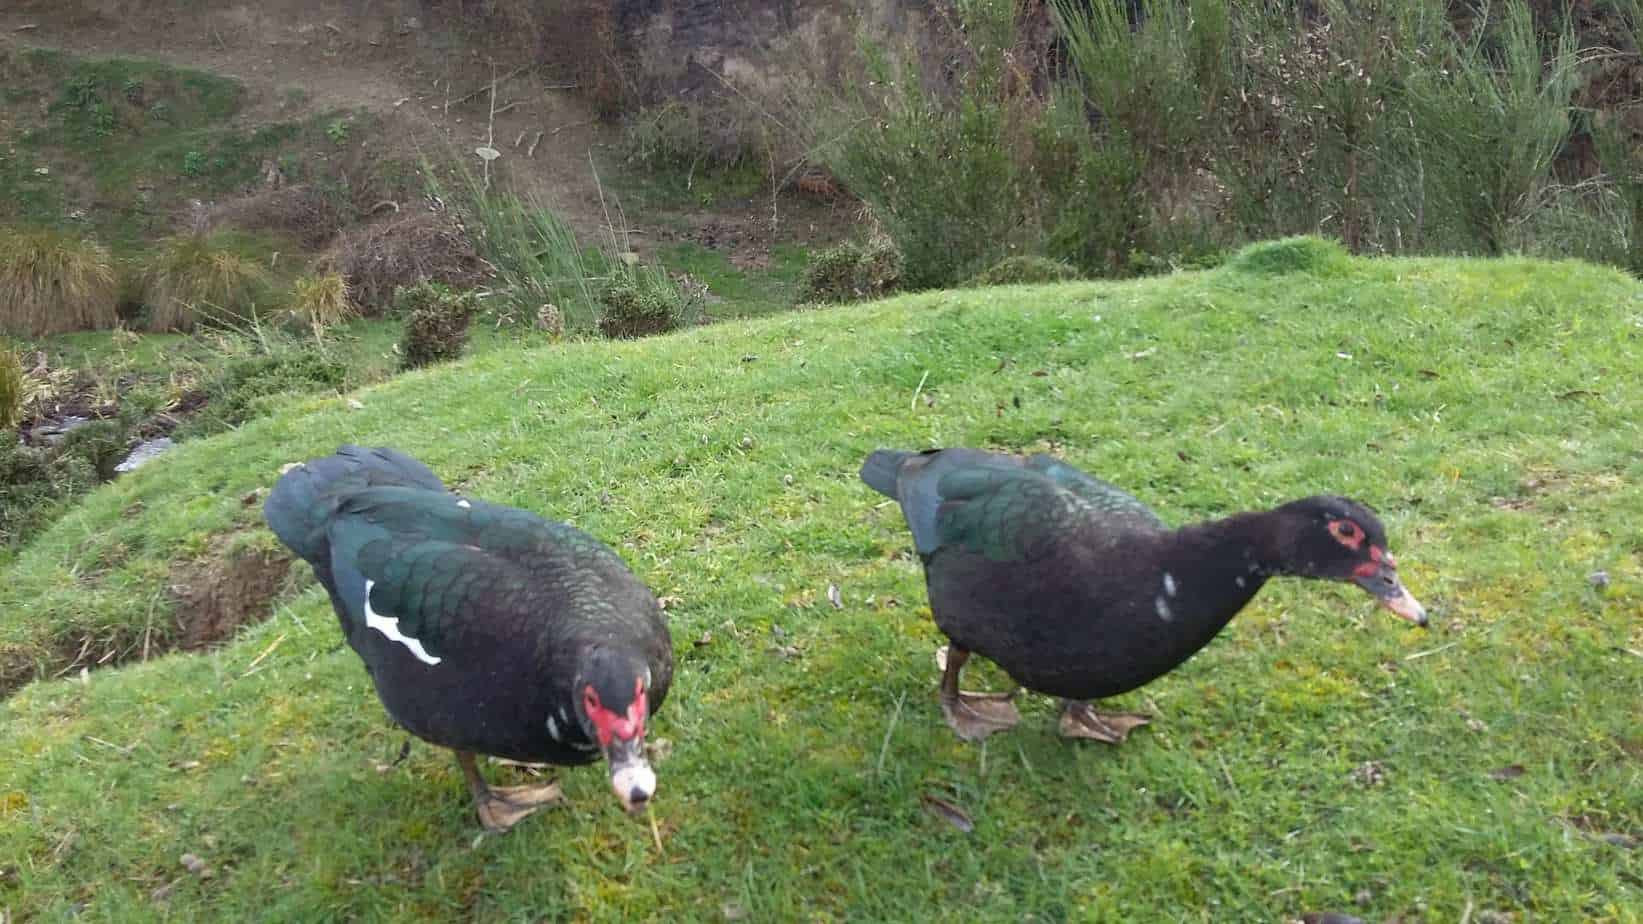 Close-up of two muscovy ducks.